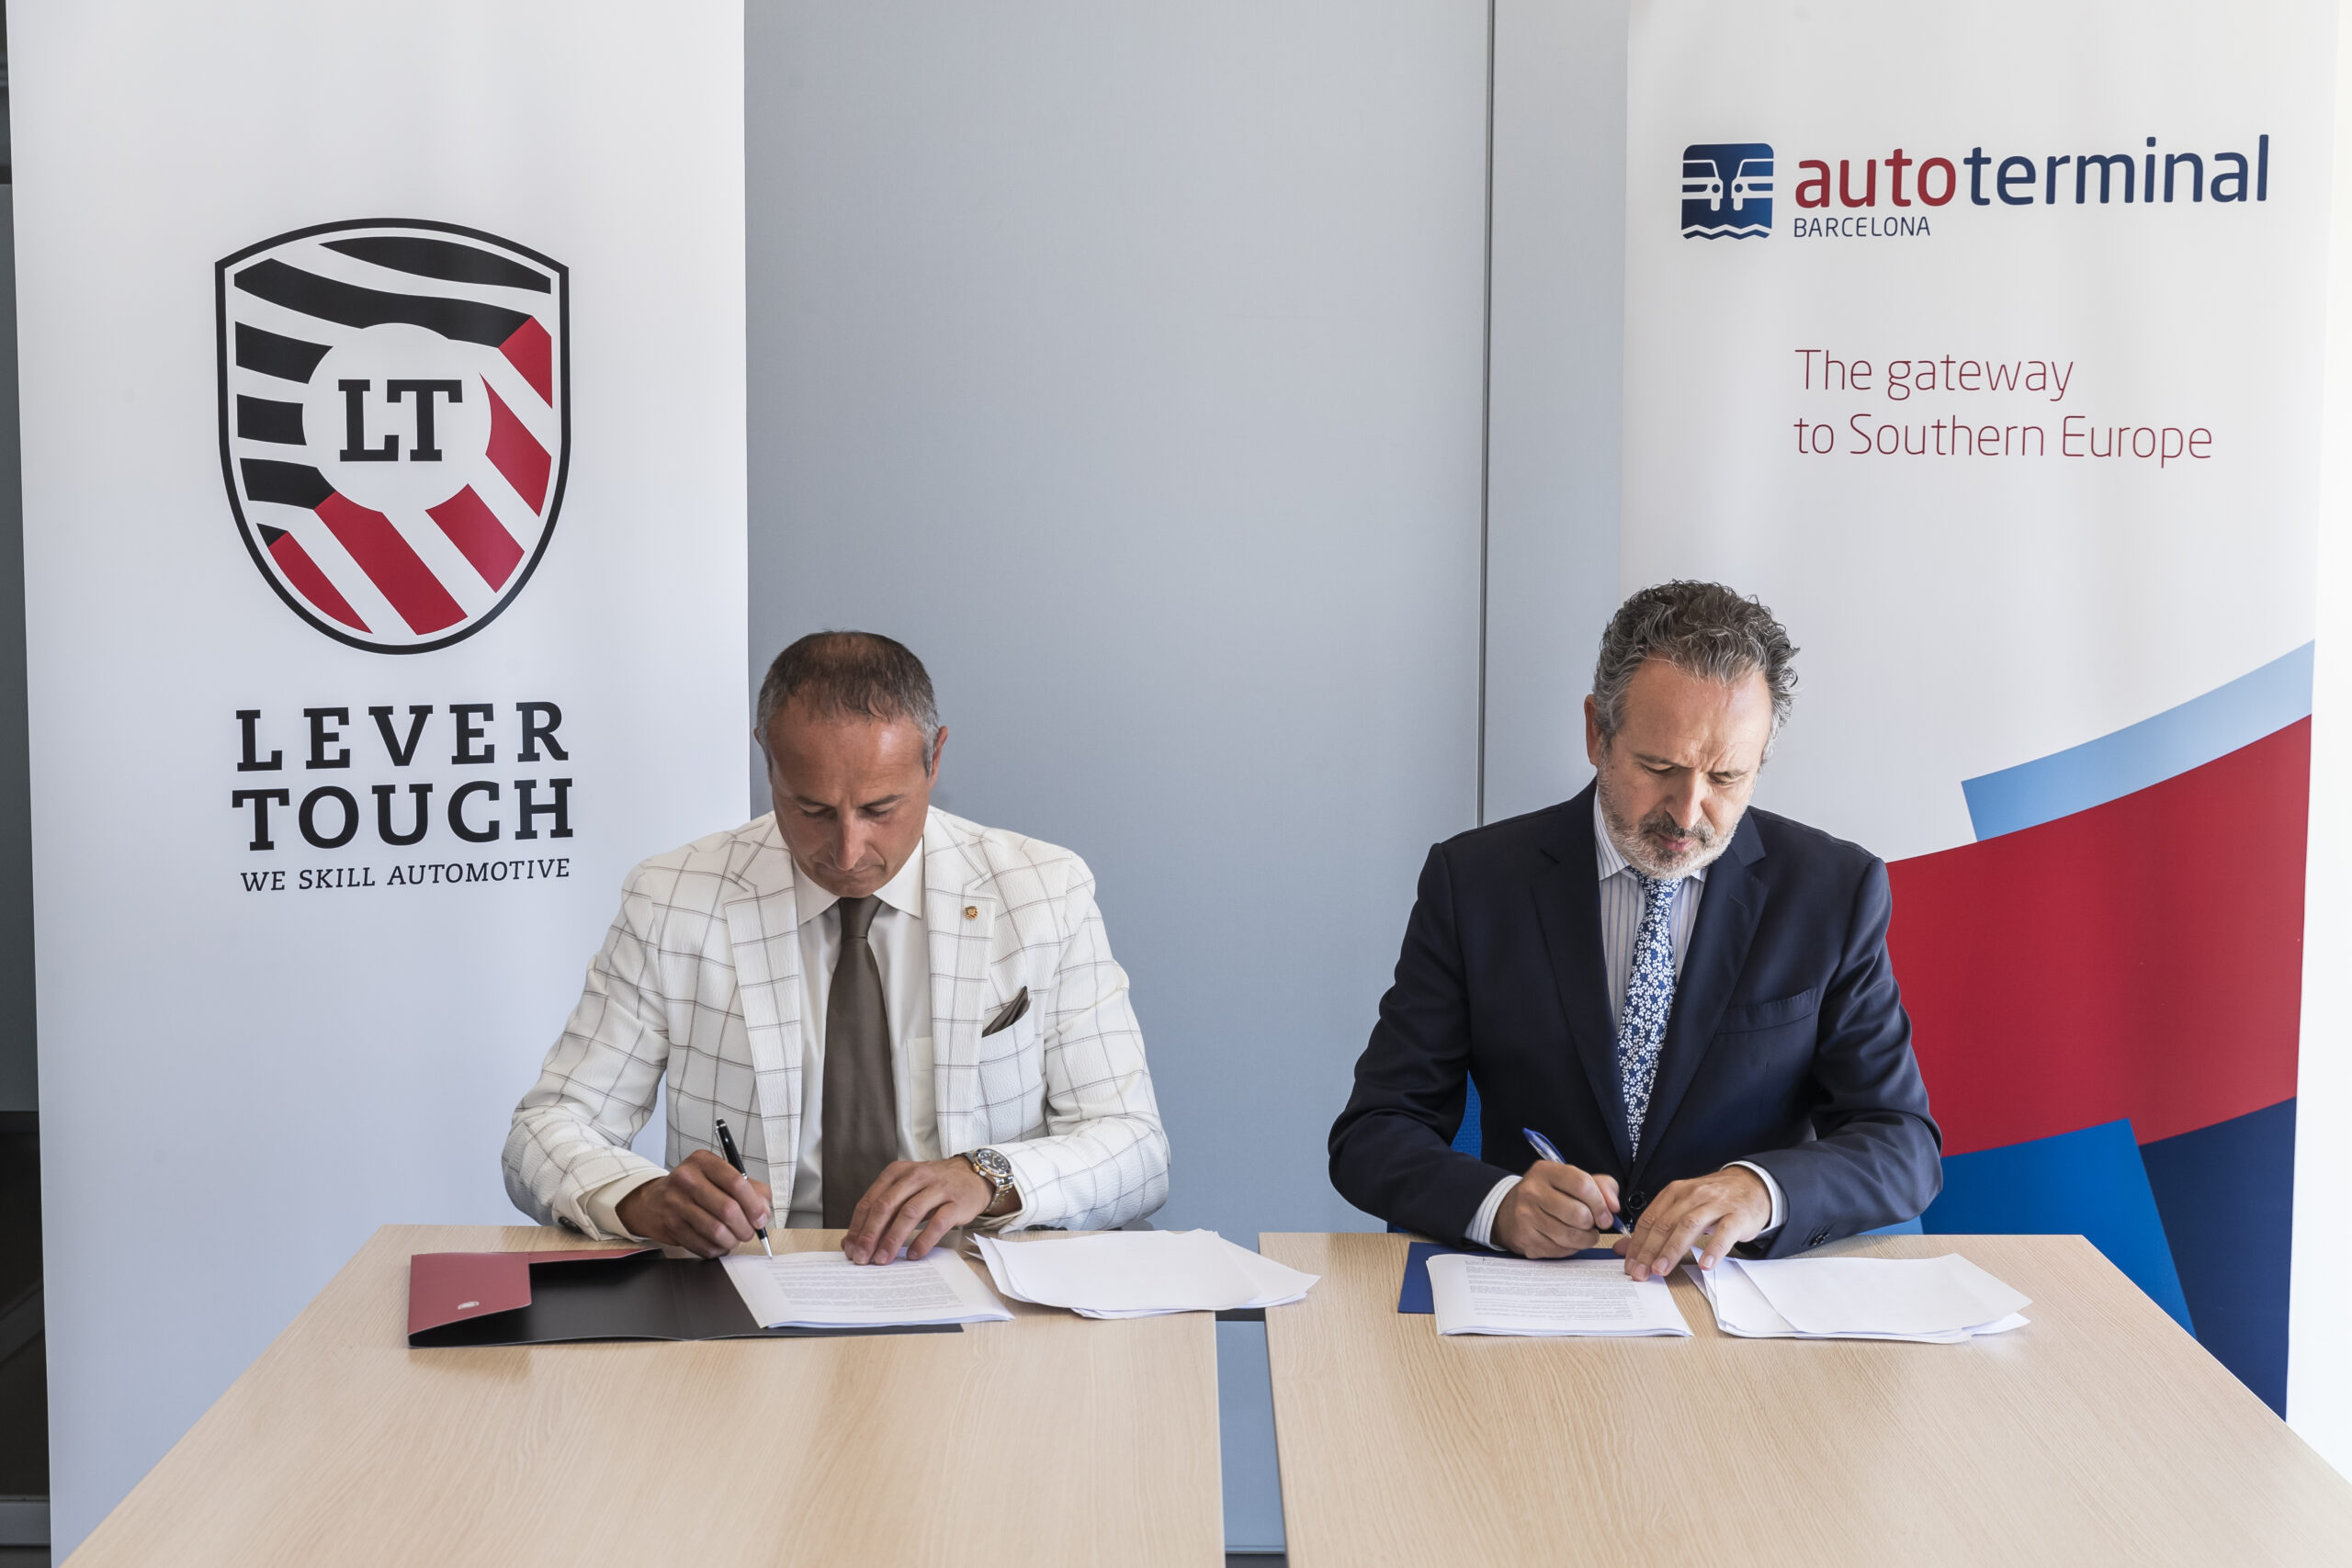 Lever Touch and Autoterminal join forces